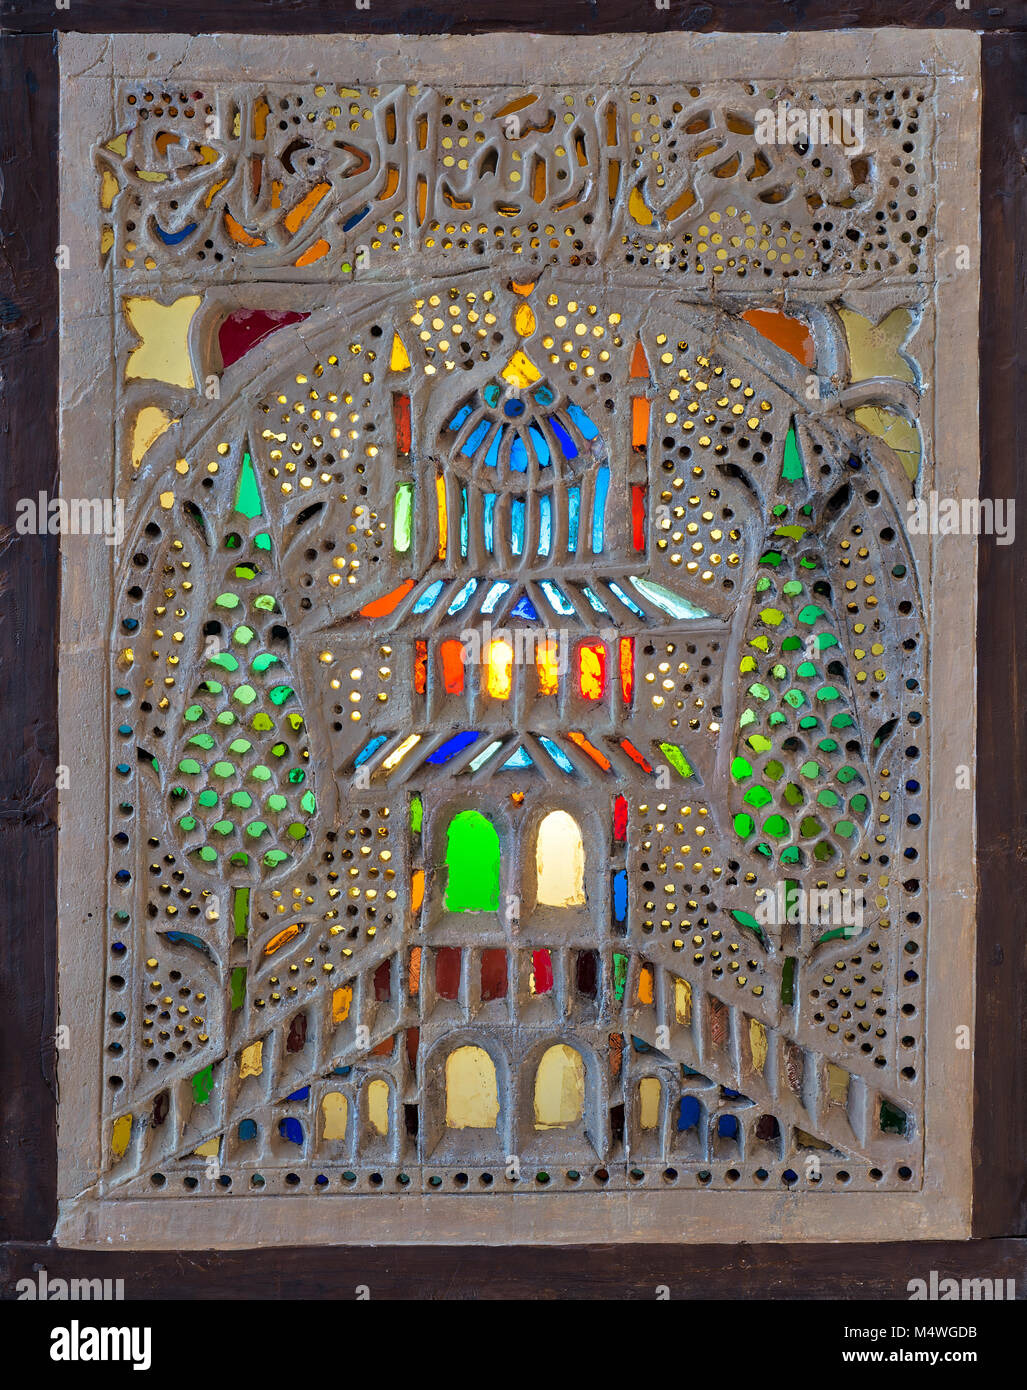 Perforated stucco window decorated with colorful stain glass with floral patterns, one of the traditions of the - Stock Image